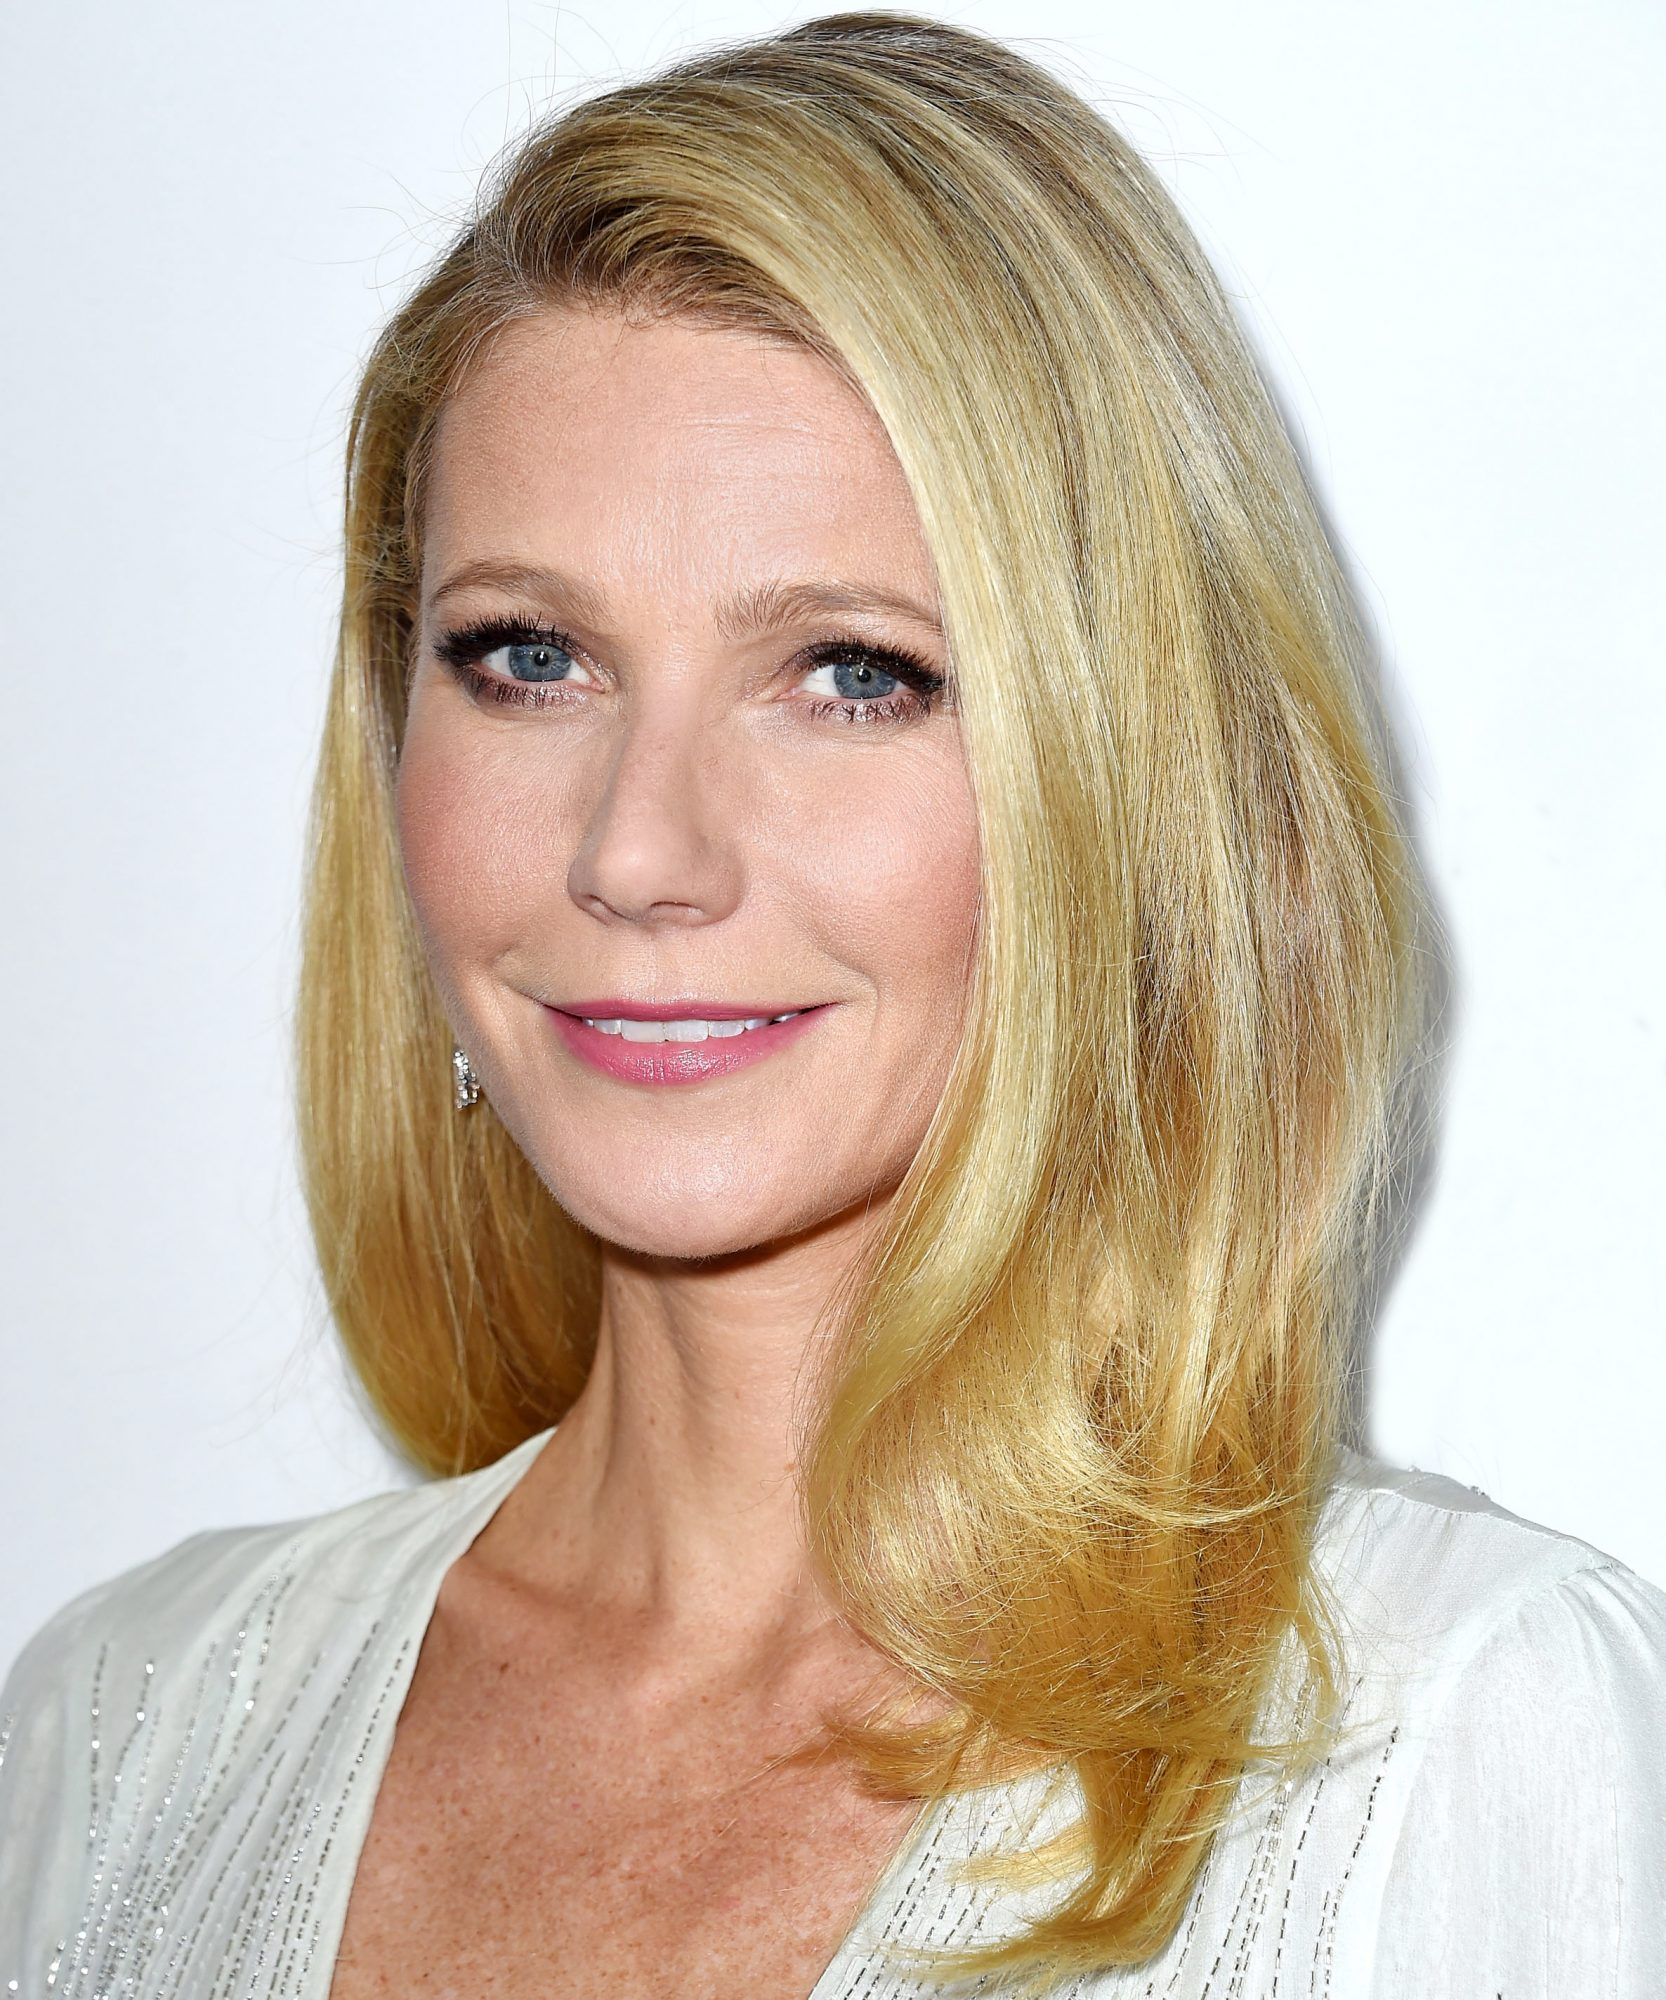 Exclusive: Go Behind the Scenes of Gwyneth Paltrow's Goop by Juice Beauty Skin-Care Campaign